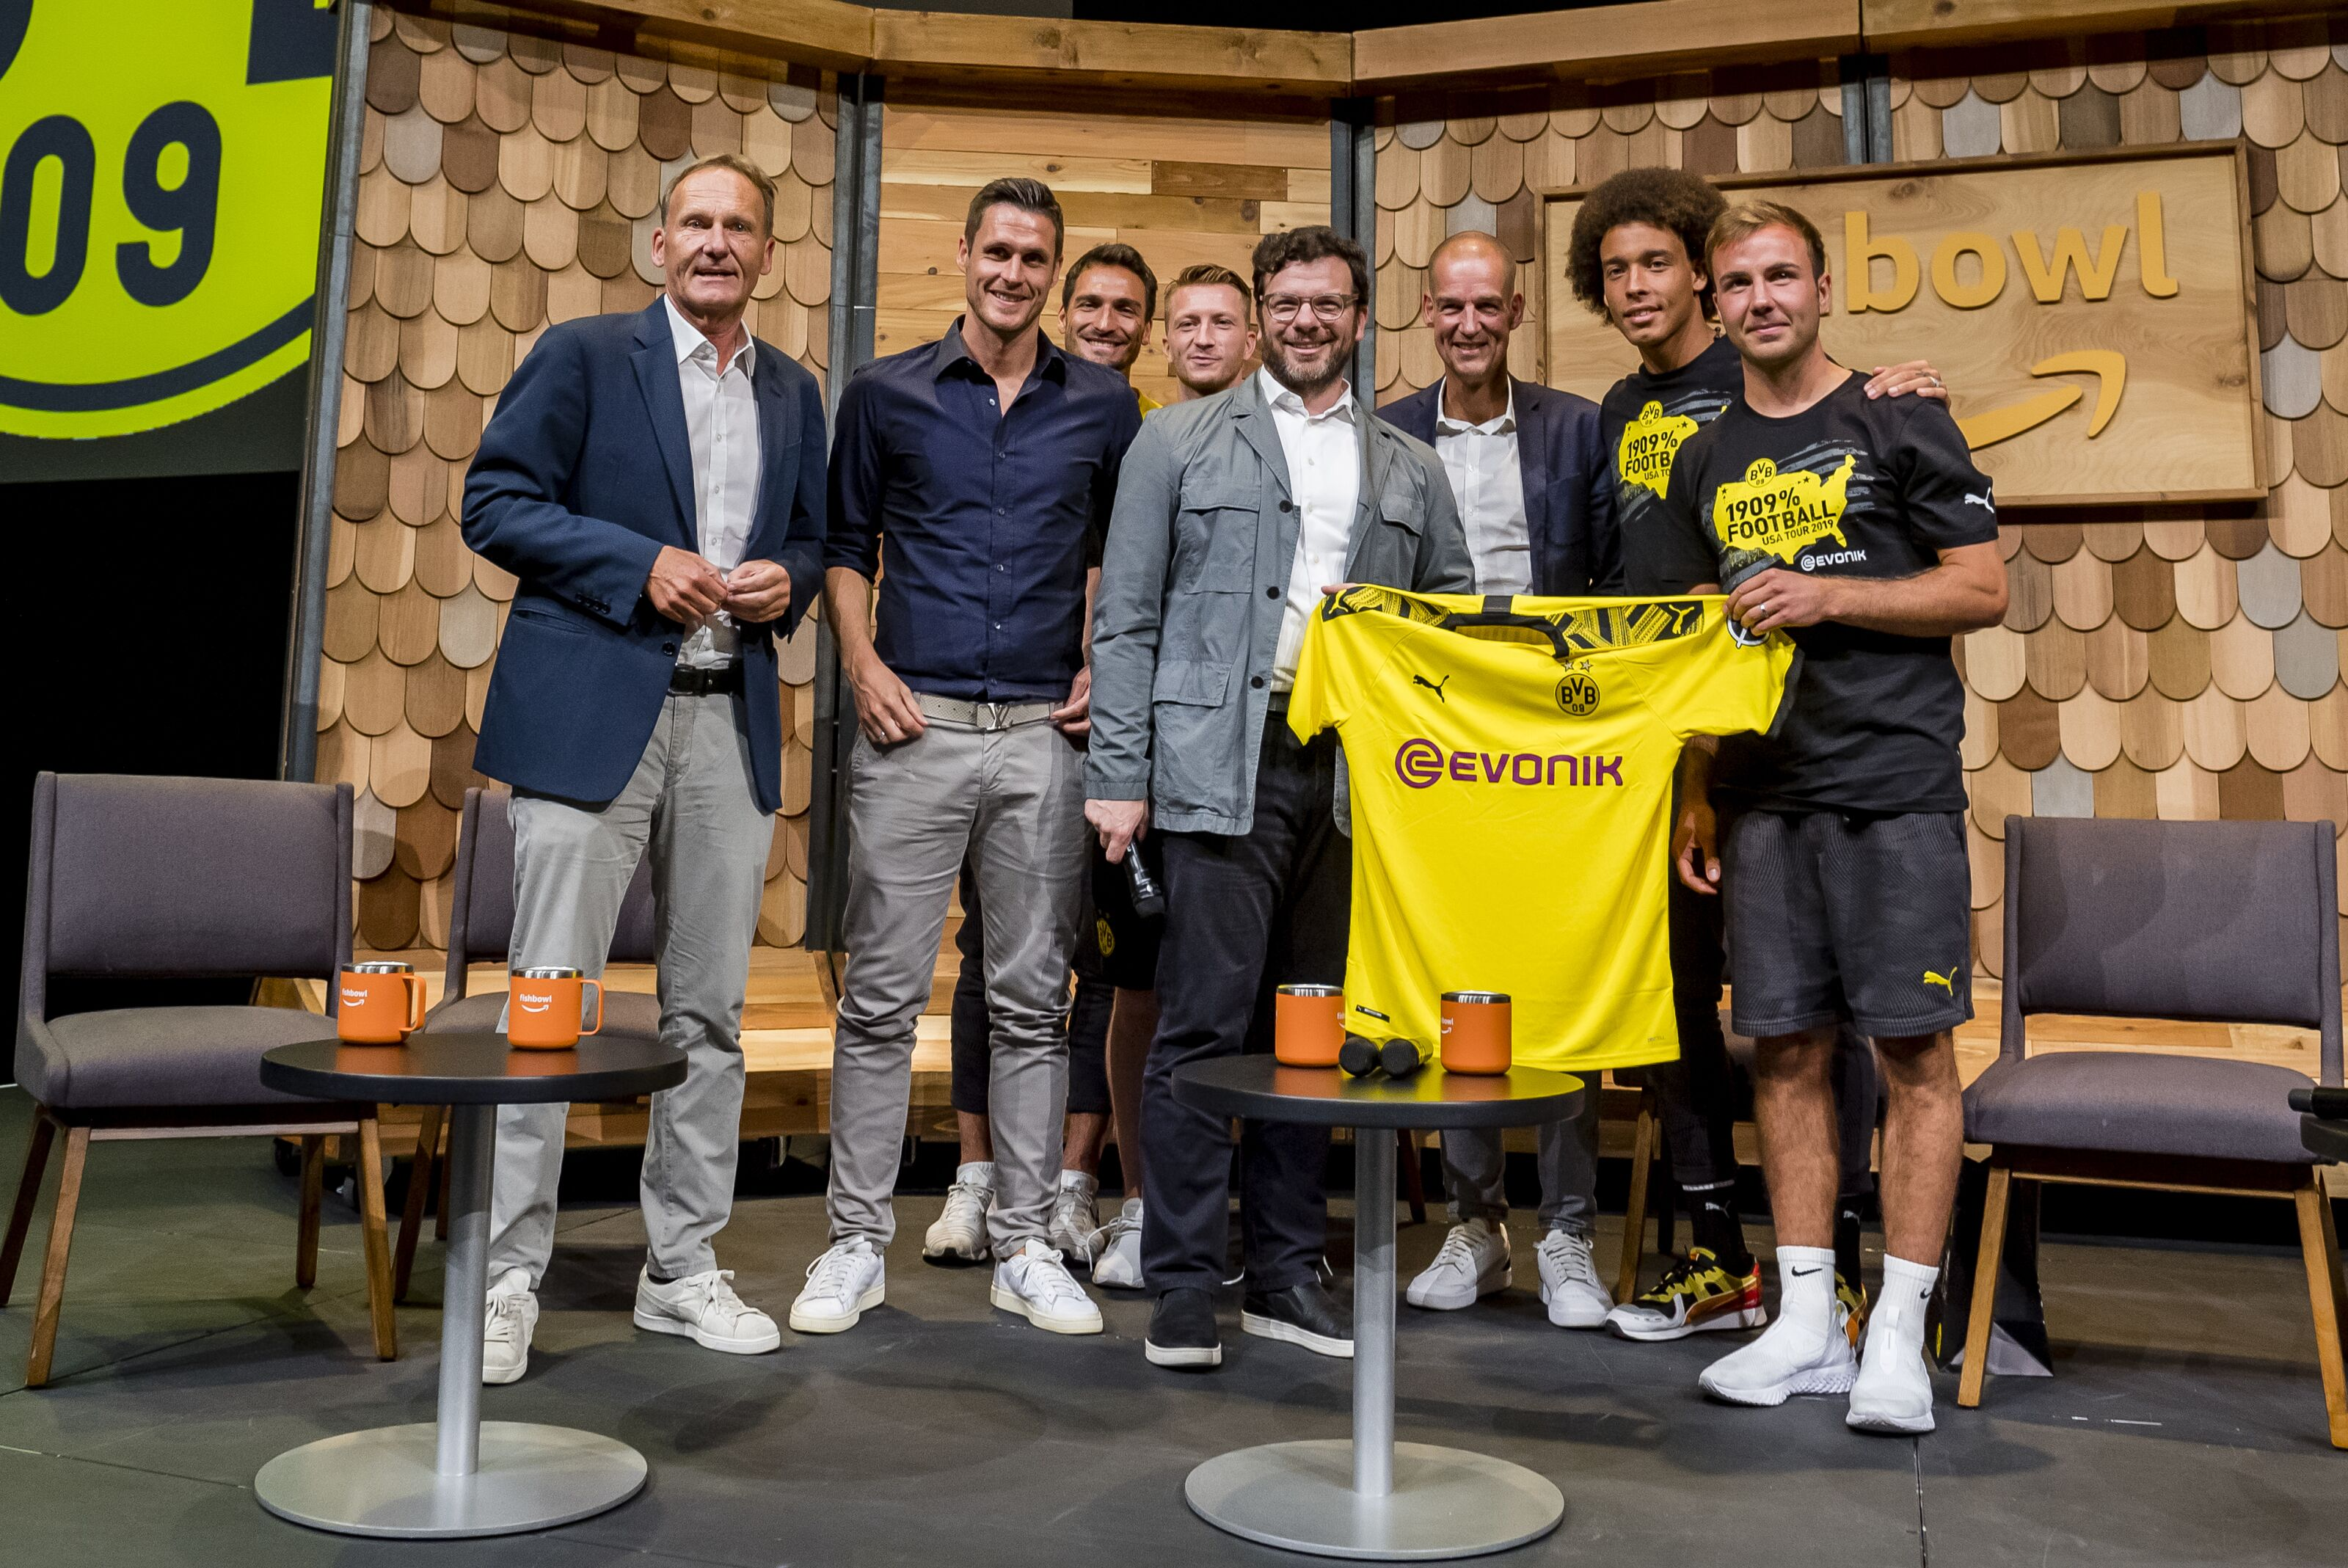 Inside Borussia Dortmund: What we learned from the third episode of the Amazon Prime documentary